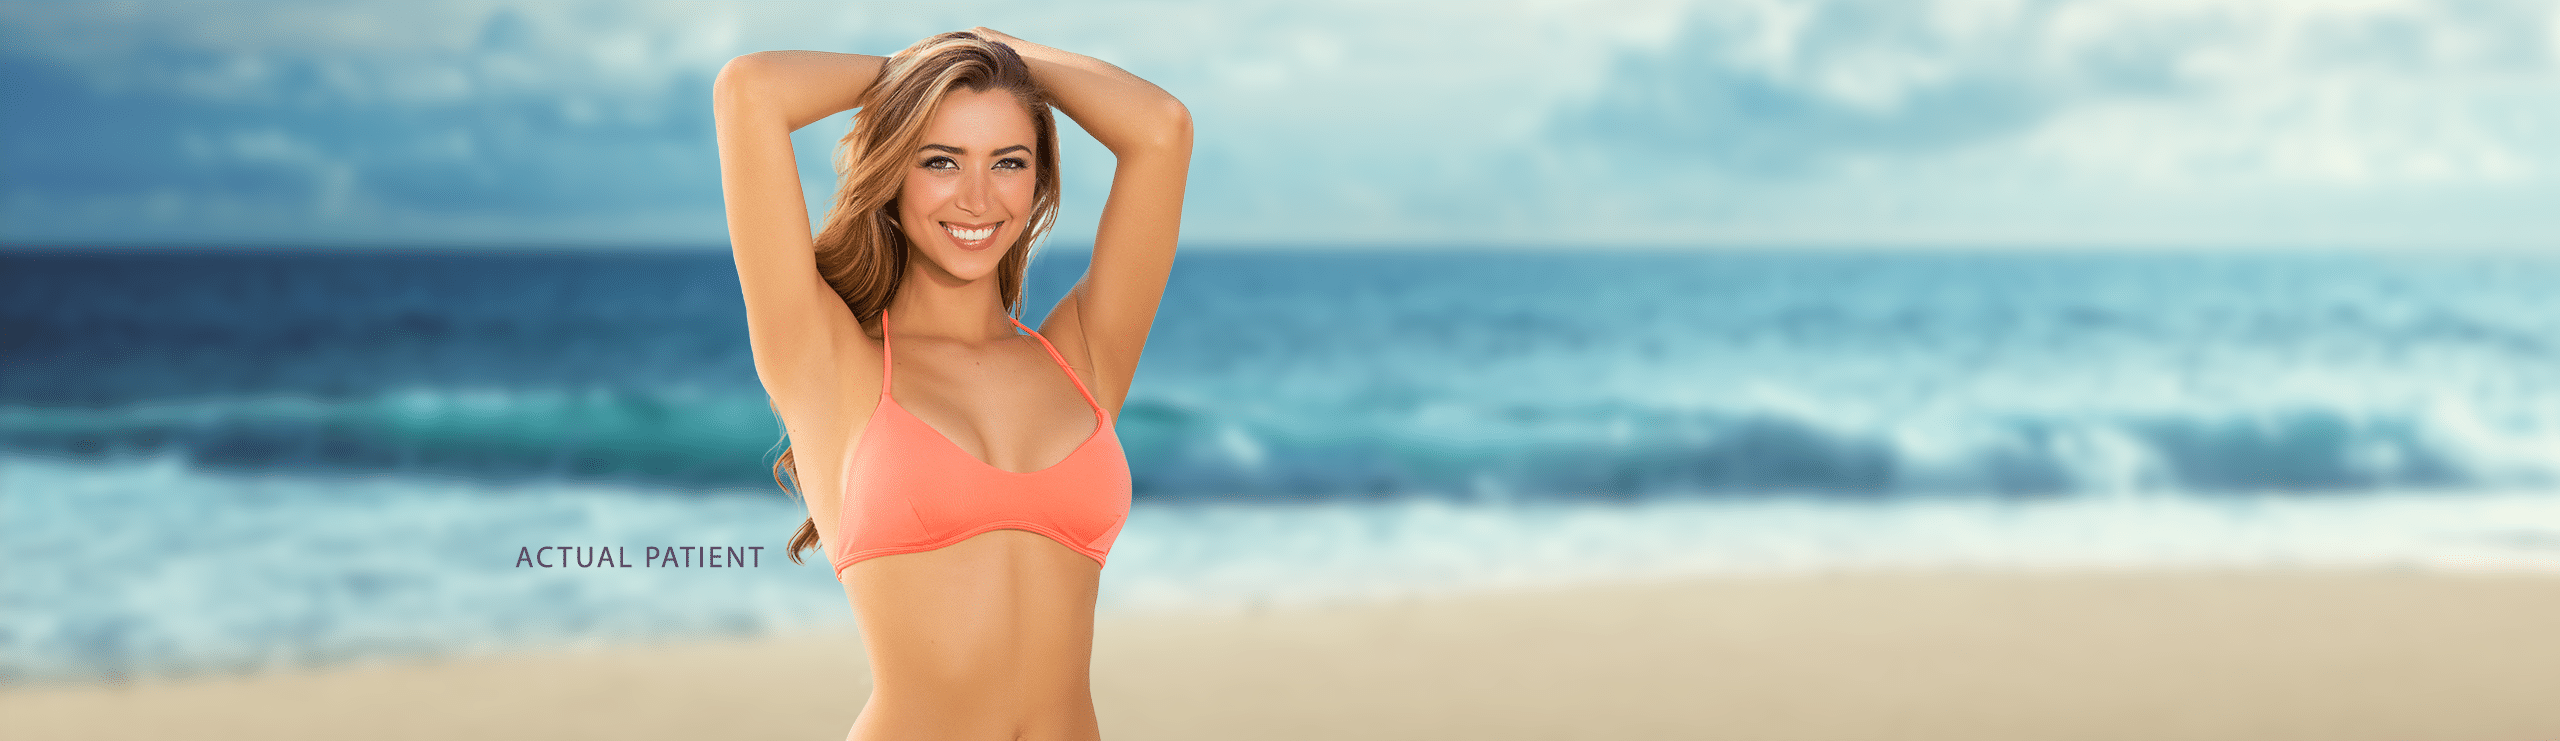 Eric S. Schaffer, MD | San Antonio TX. Exceeding Expectations LEARN ABOUT  HIDDEN SCAR BREAST AUGMENTATION